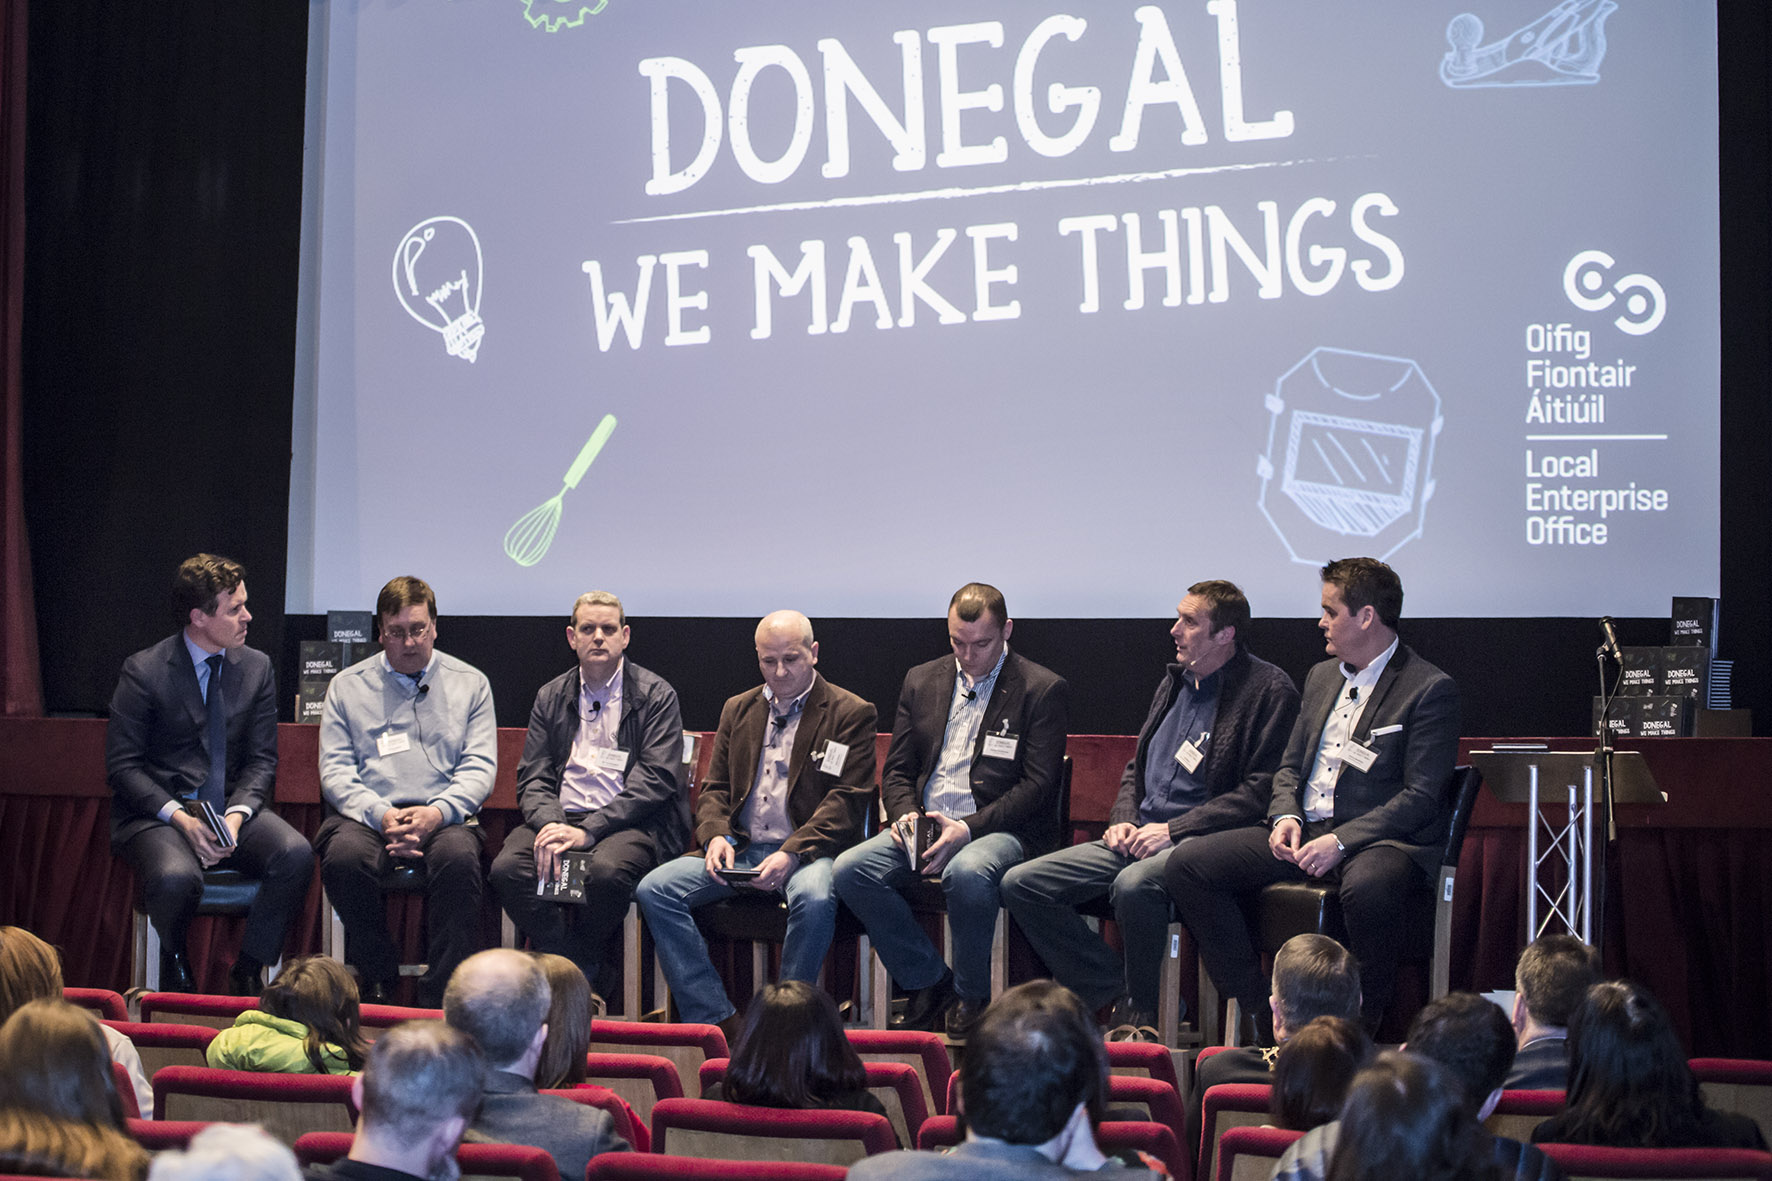 Donegal We Make Things4